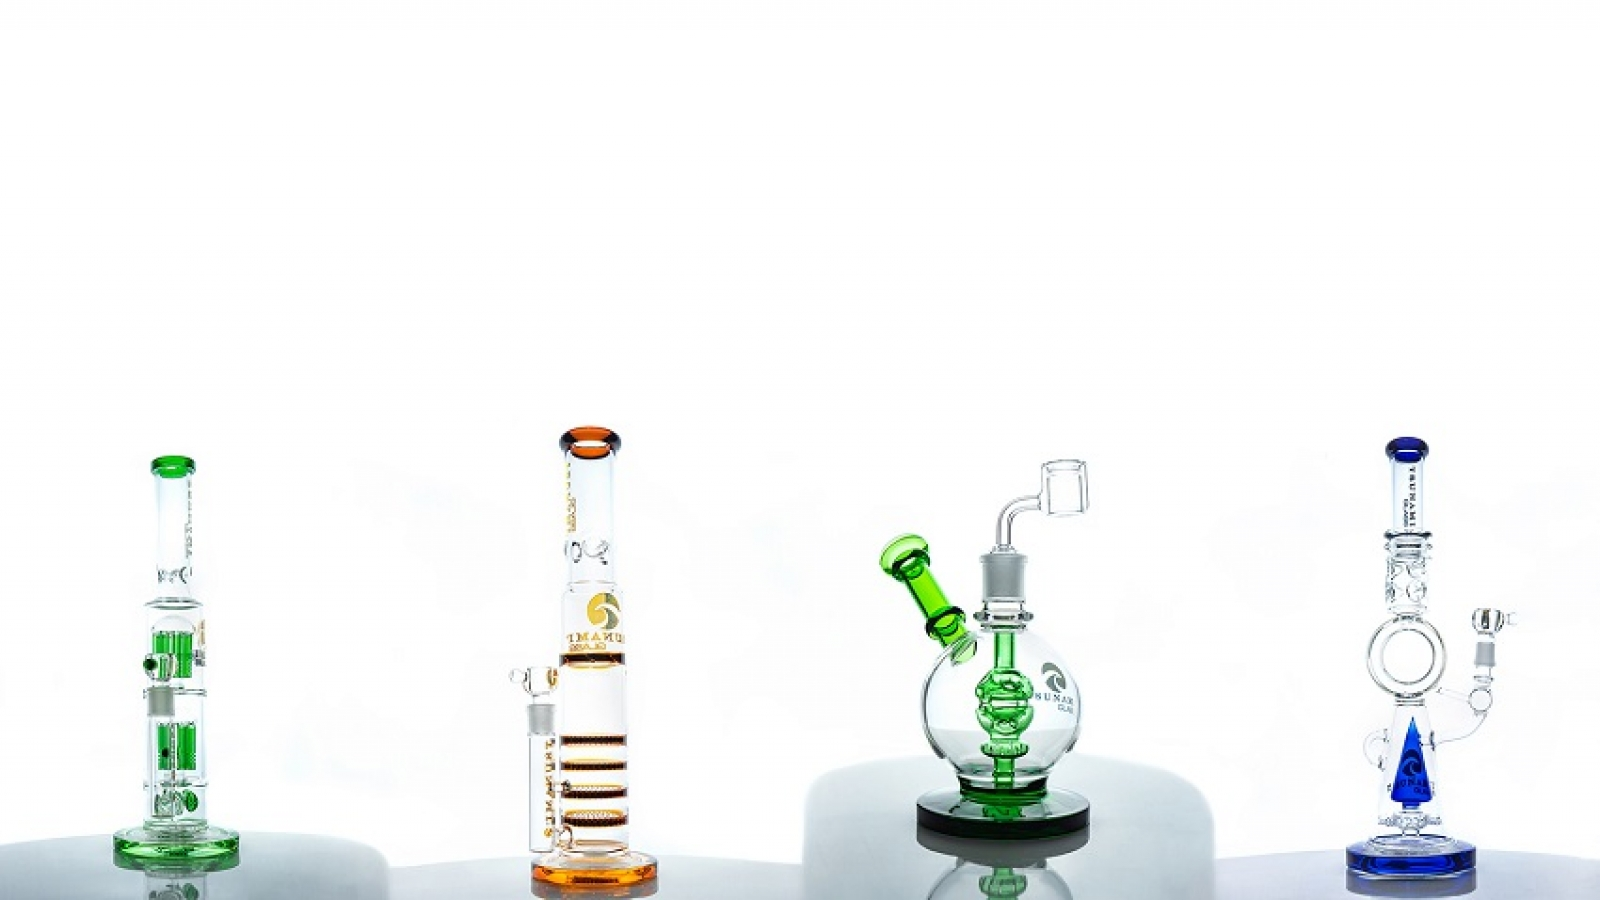 Buying a High Quality Glass Bong is Important